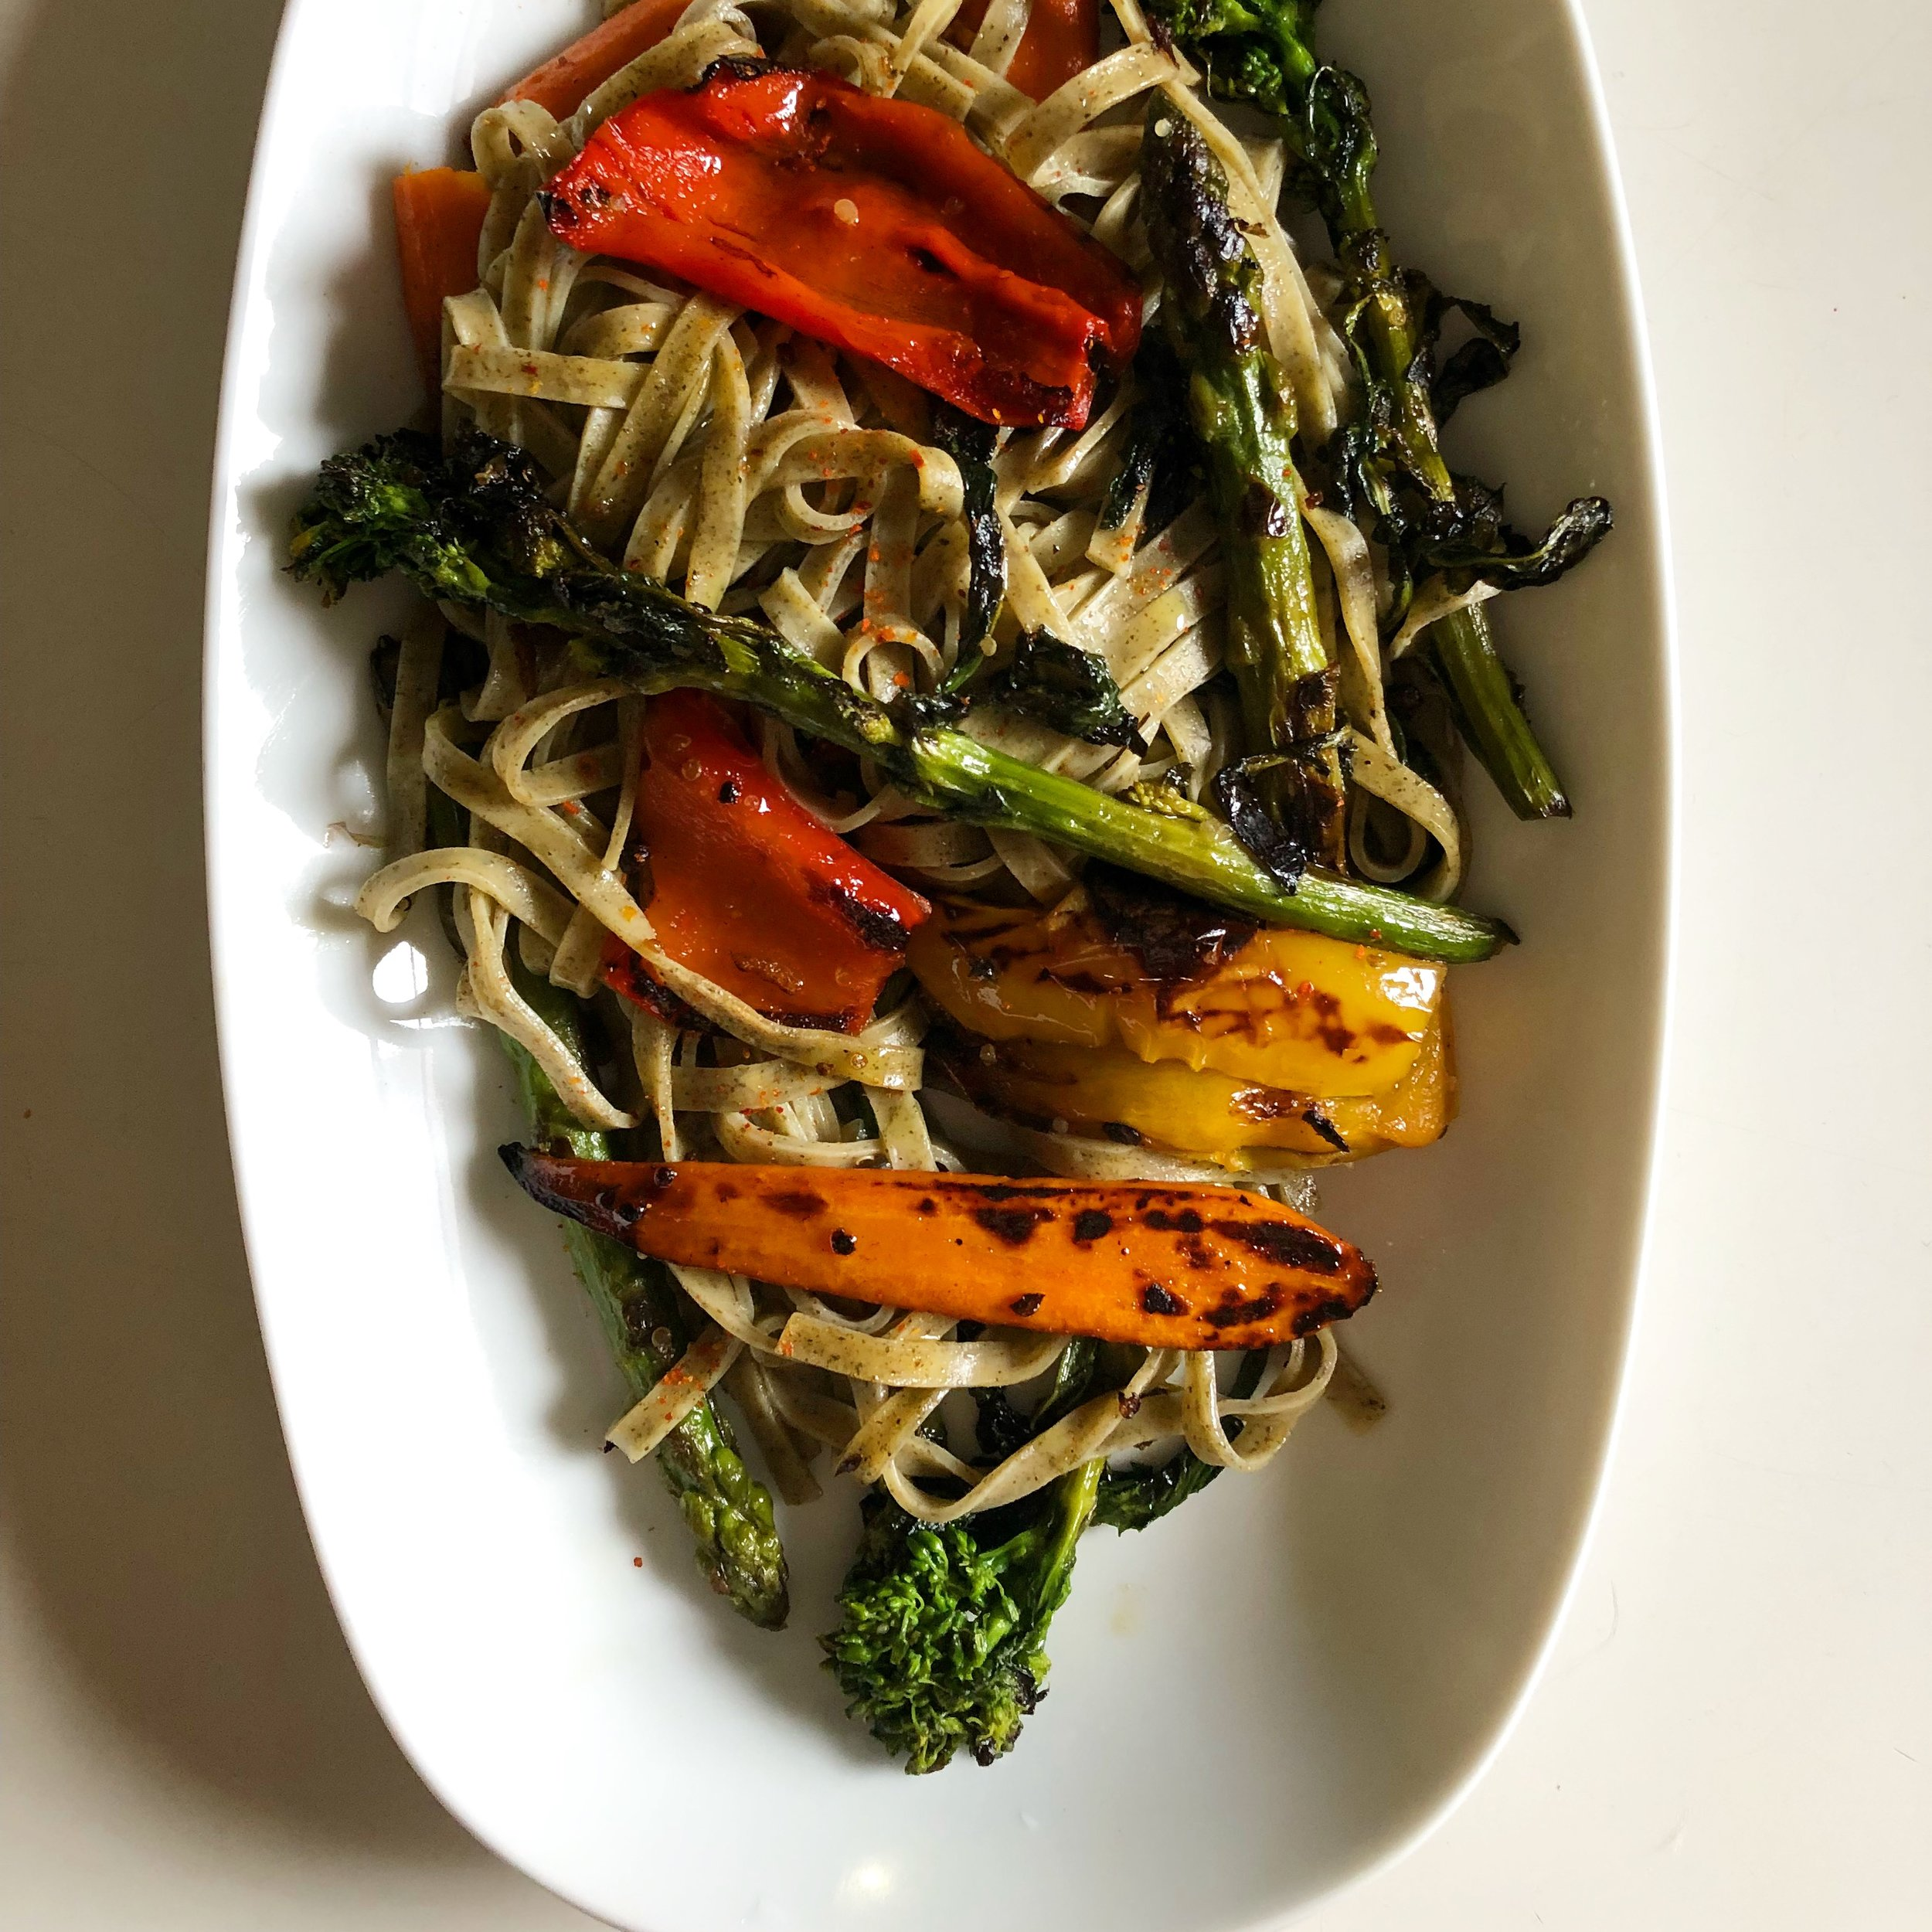 Basil pasta with grilled vegetables